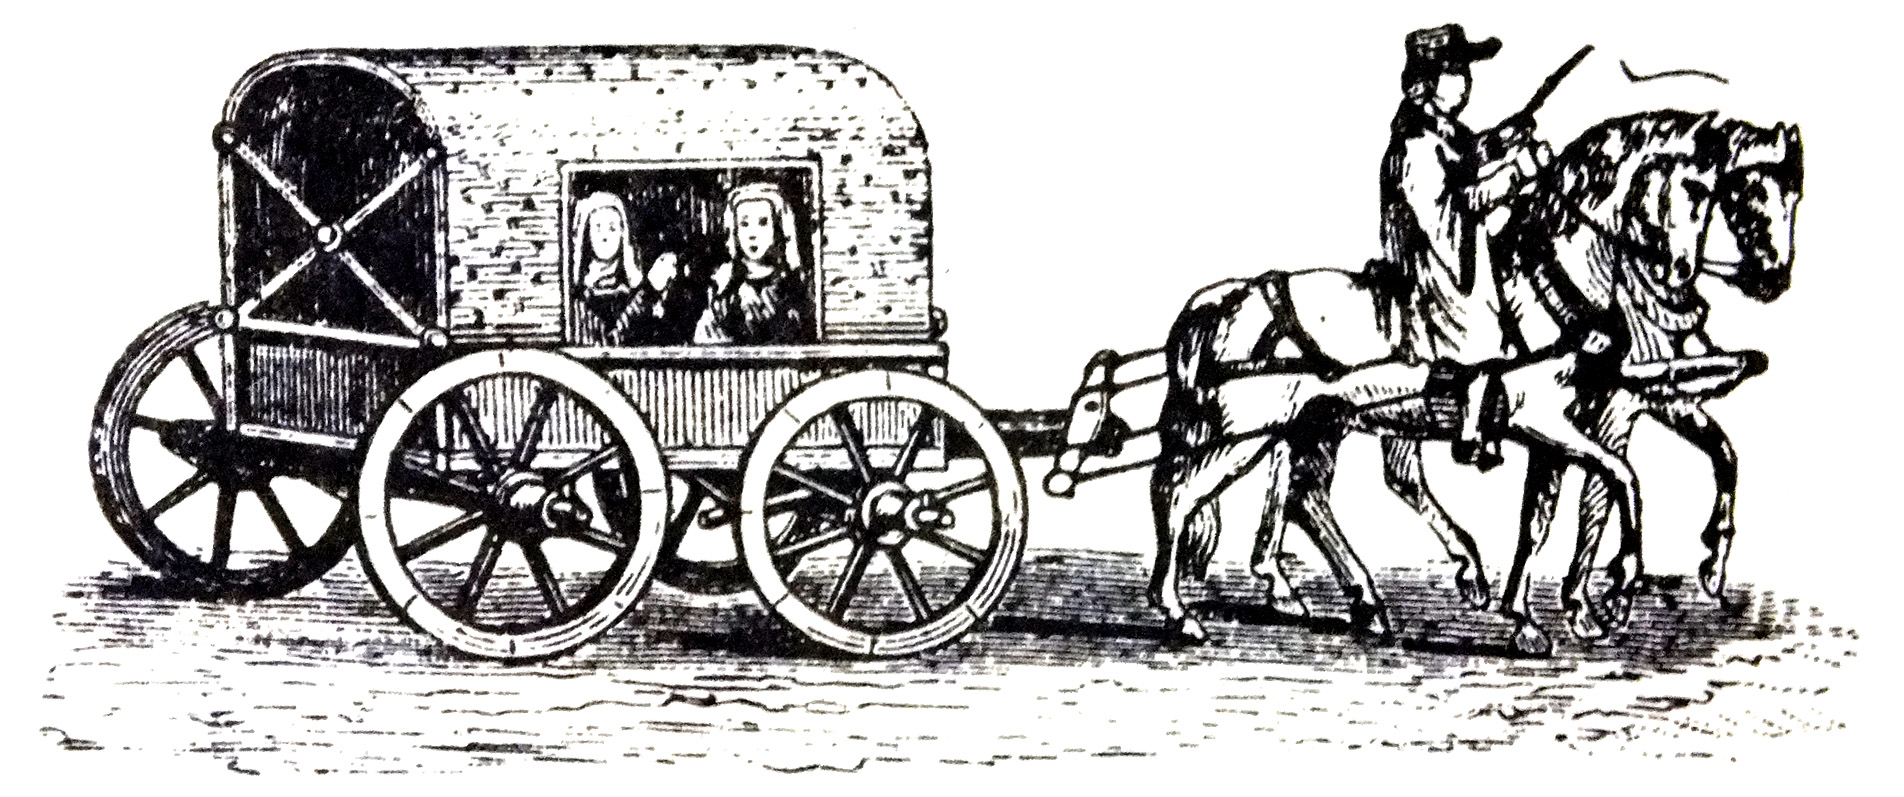 File:Closed horse-drawn carriage.jpg - Wikimedia Commons